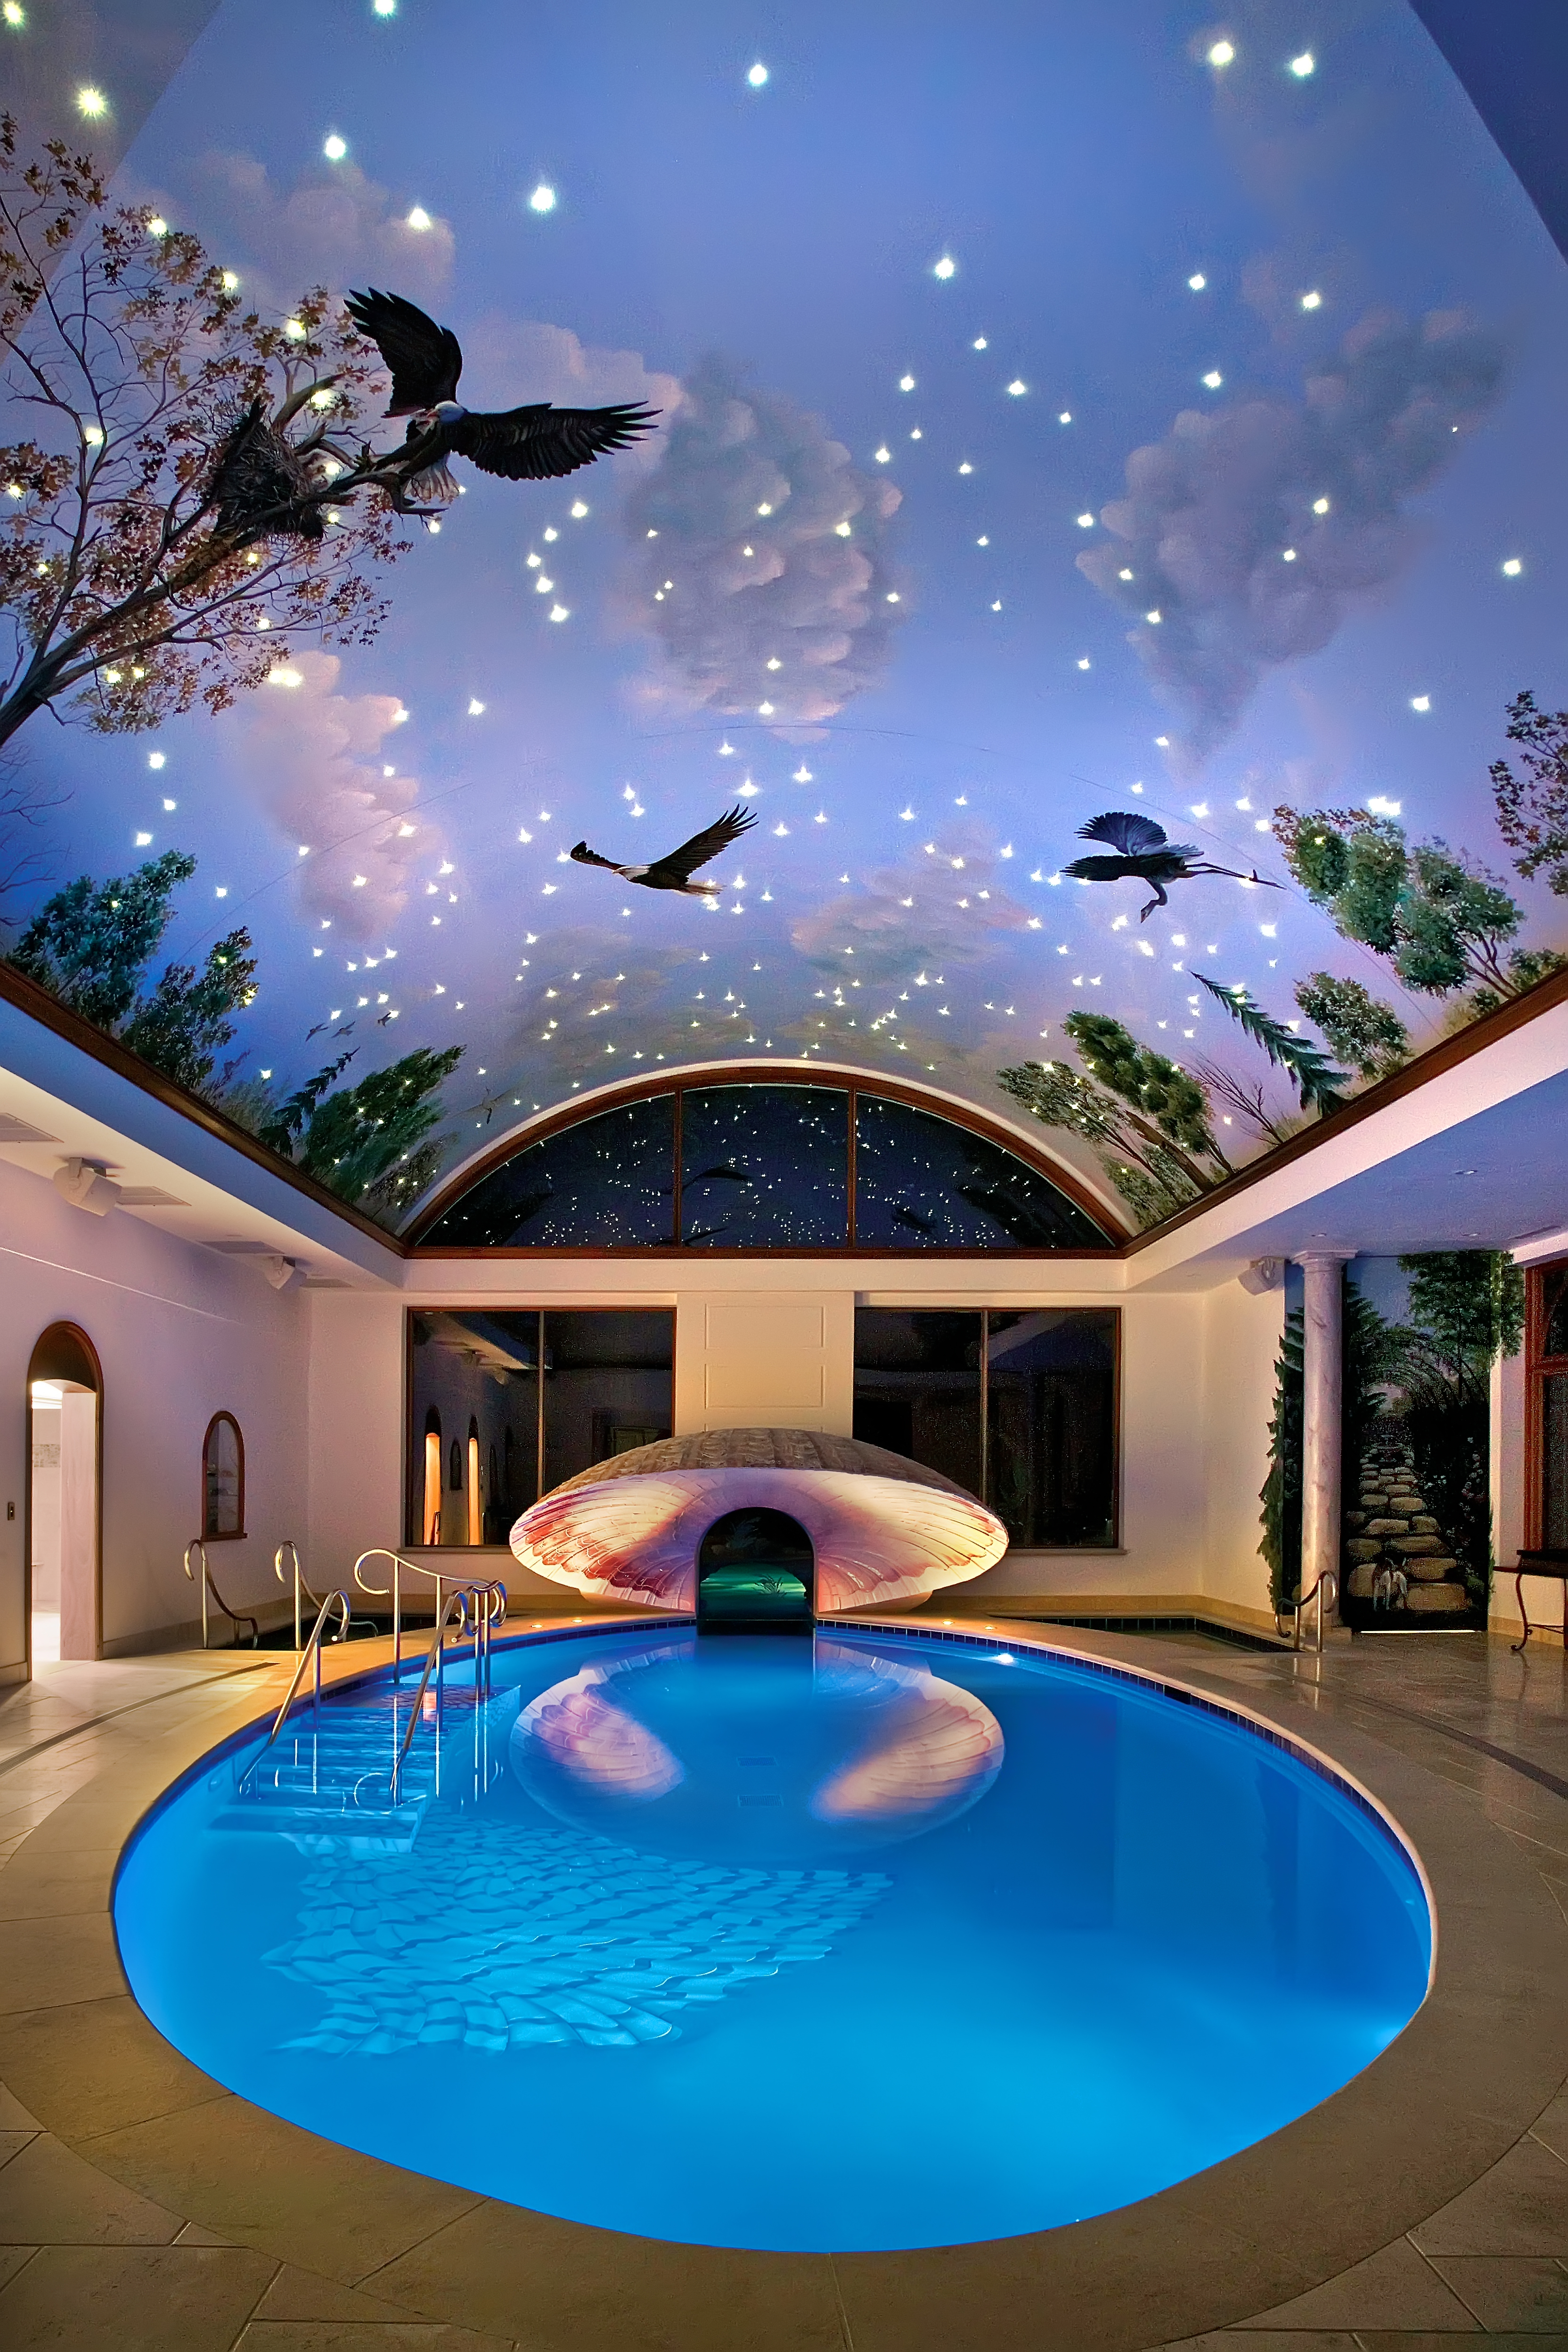 https://vip-1gl.ru/vipberrrt/5104magnificent-indoor-ceiling-swimming-pool-design-circly-luxurious-indoor-swimming-pools-to-get-private-experience.jpg